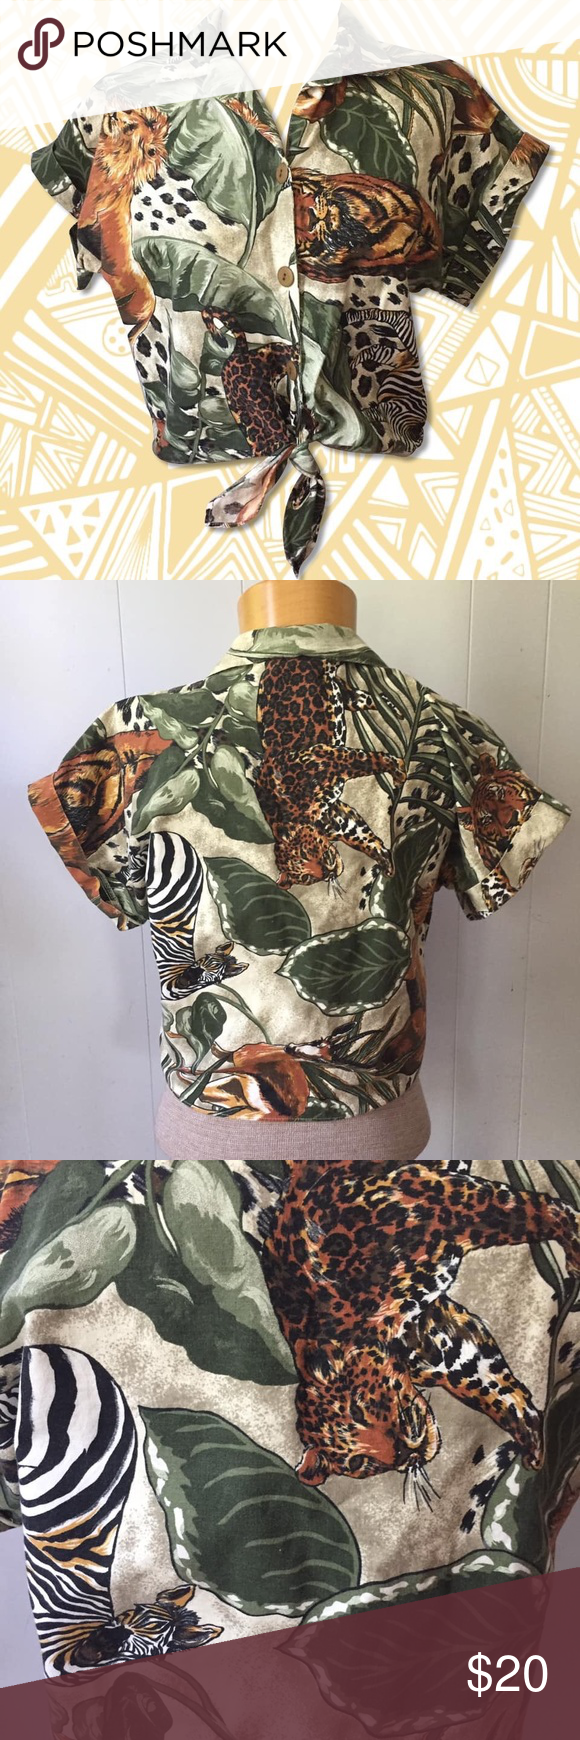 Vintage Jungle Pattern Button Up Knotted Crop Top MLove love love this vintage crop top. Really cool jungle print. Size is unmarked but my guess is about S-M but please refer to flat measurements to be sure. In beautiful condition, no visible flaws.  Chest: 20  Length: 19  Bicep: 8  Sleeve Length: 13  I am always open to offers!  Please message me if you would like additional info on item. All clothing measurements are taken on a flat surface, un-stretched. connections Tops Crop Tops #junglepattern